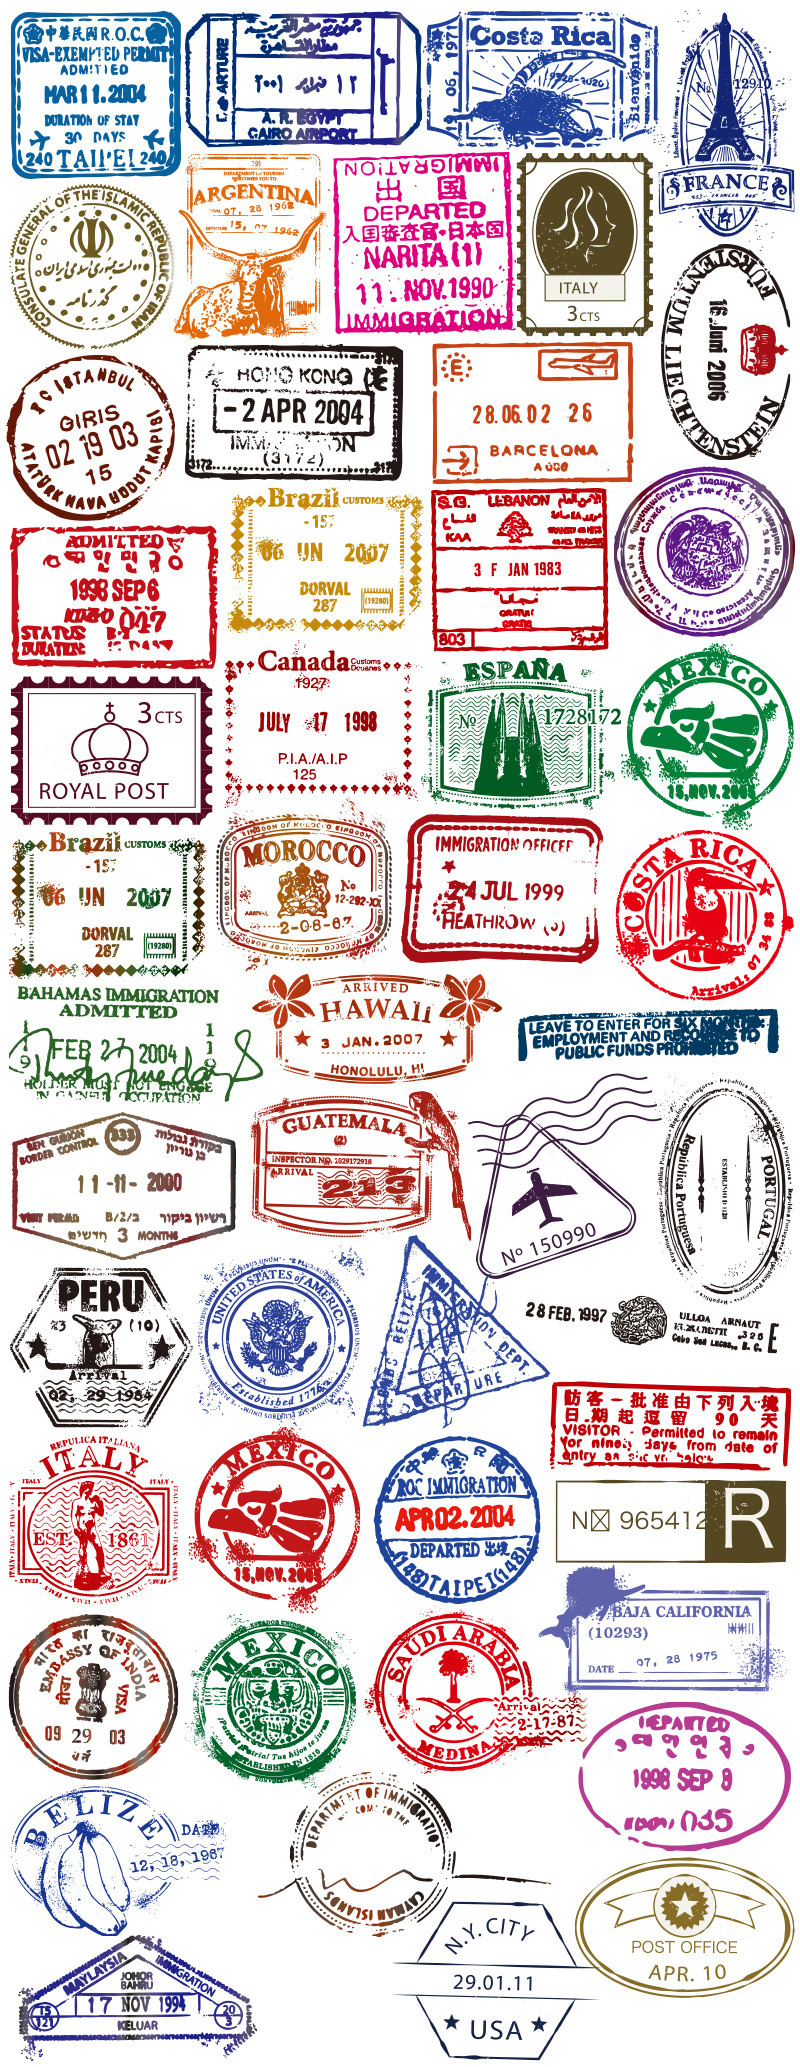 50 transparent travel-themed vinyl stickers for laptops or suitcases